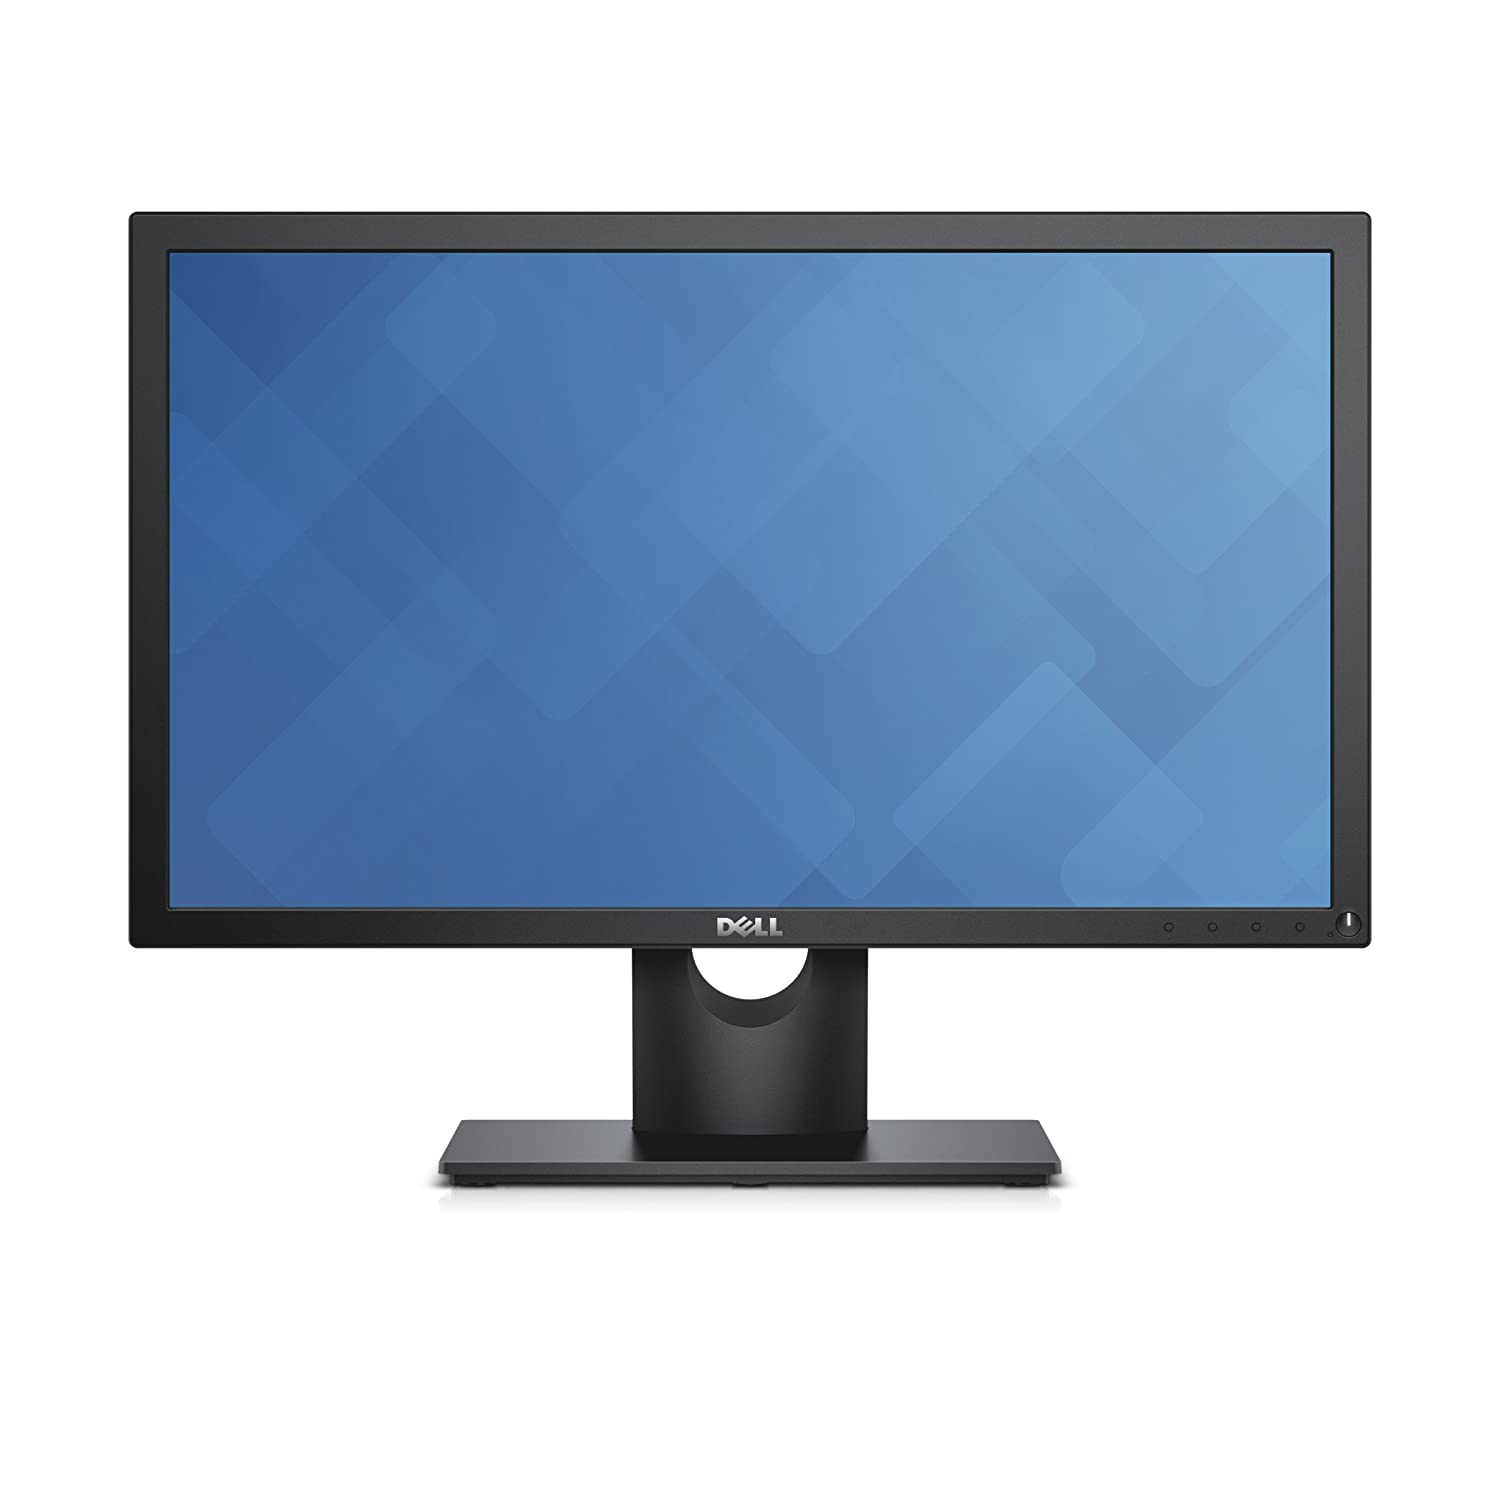 Dell E2216HV - Monitor de 22' Full HD (LED, 200, CD/m² 1000:1, 5 ms) Color Negro Dell E2216HV - Monitor de 22 Full HD (LED CD/m² 1000:1 Dell Computers